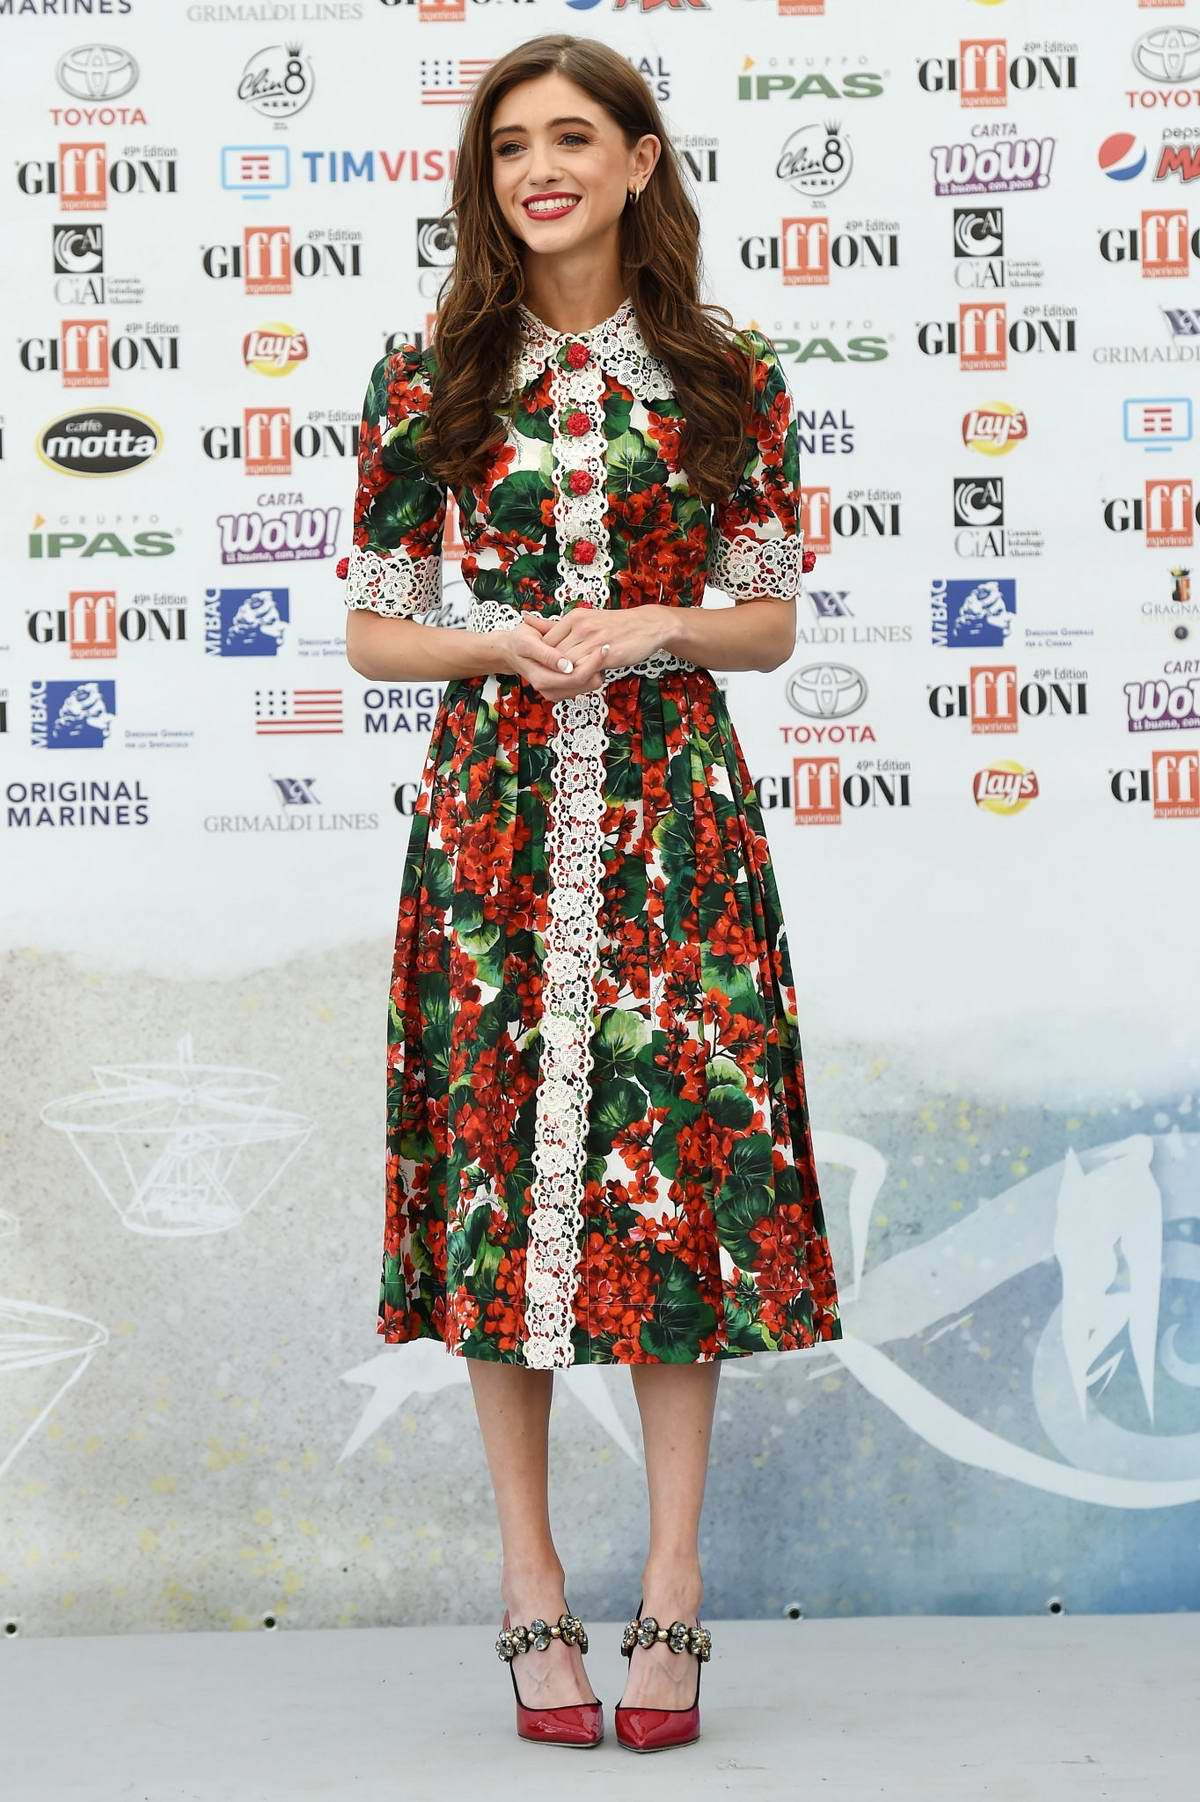 Natalia Dyer attends the 2019 Giffoni Film Festival in Giffoni Valle Piana, Italy